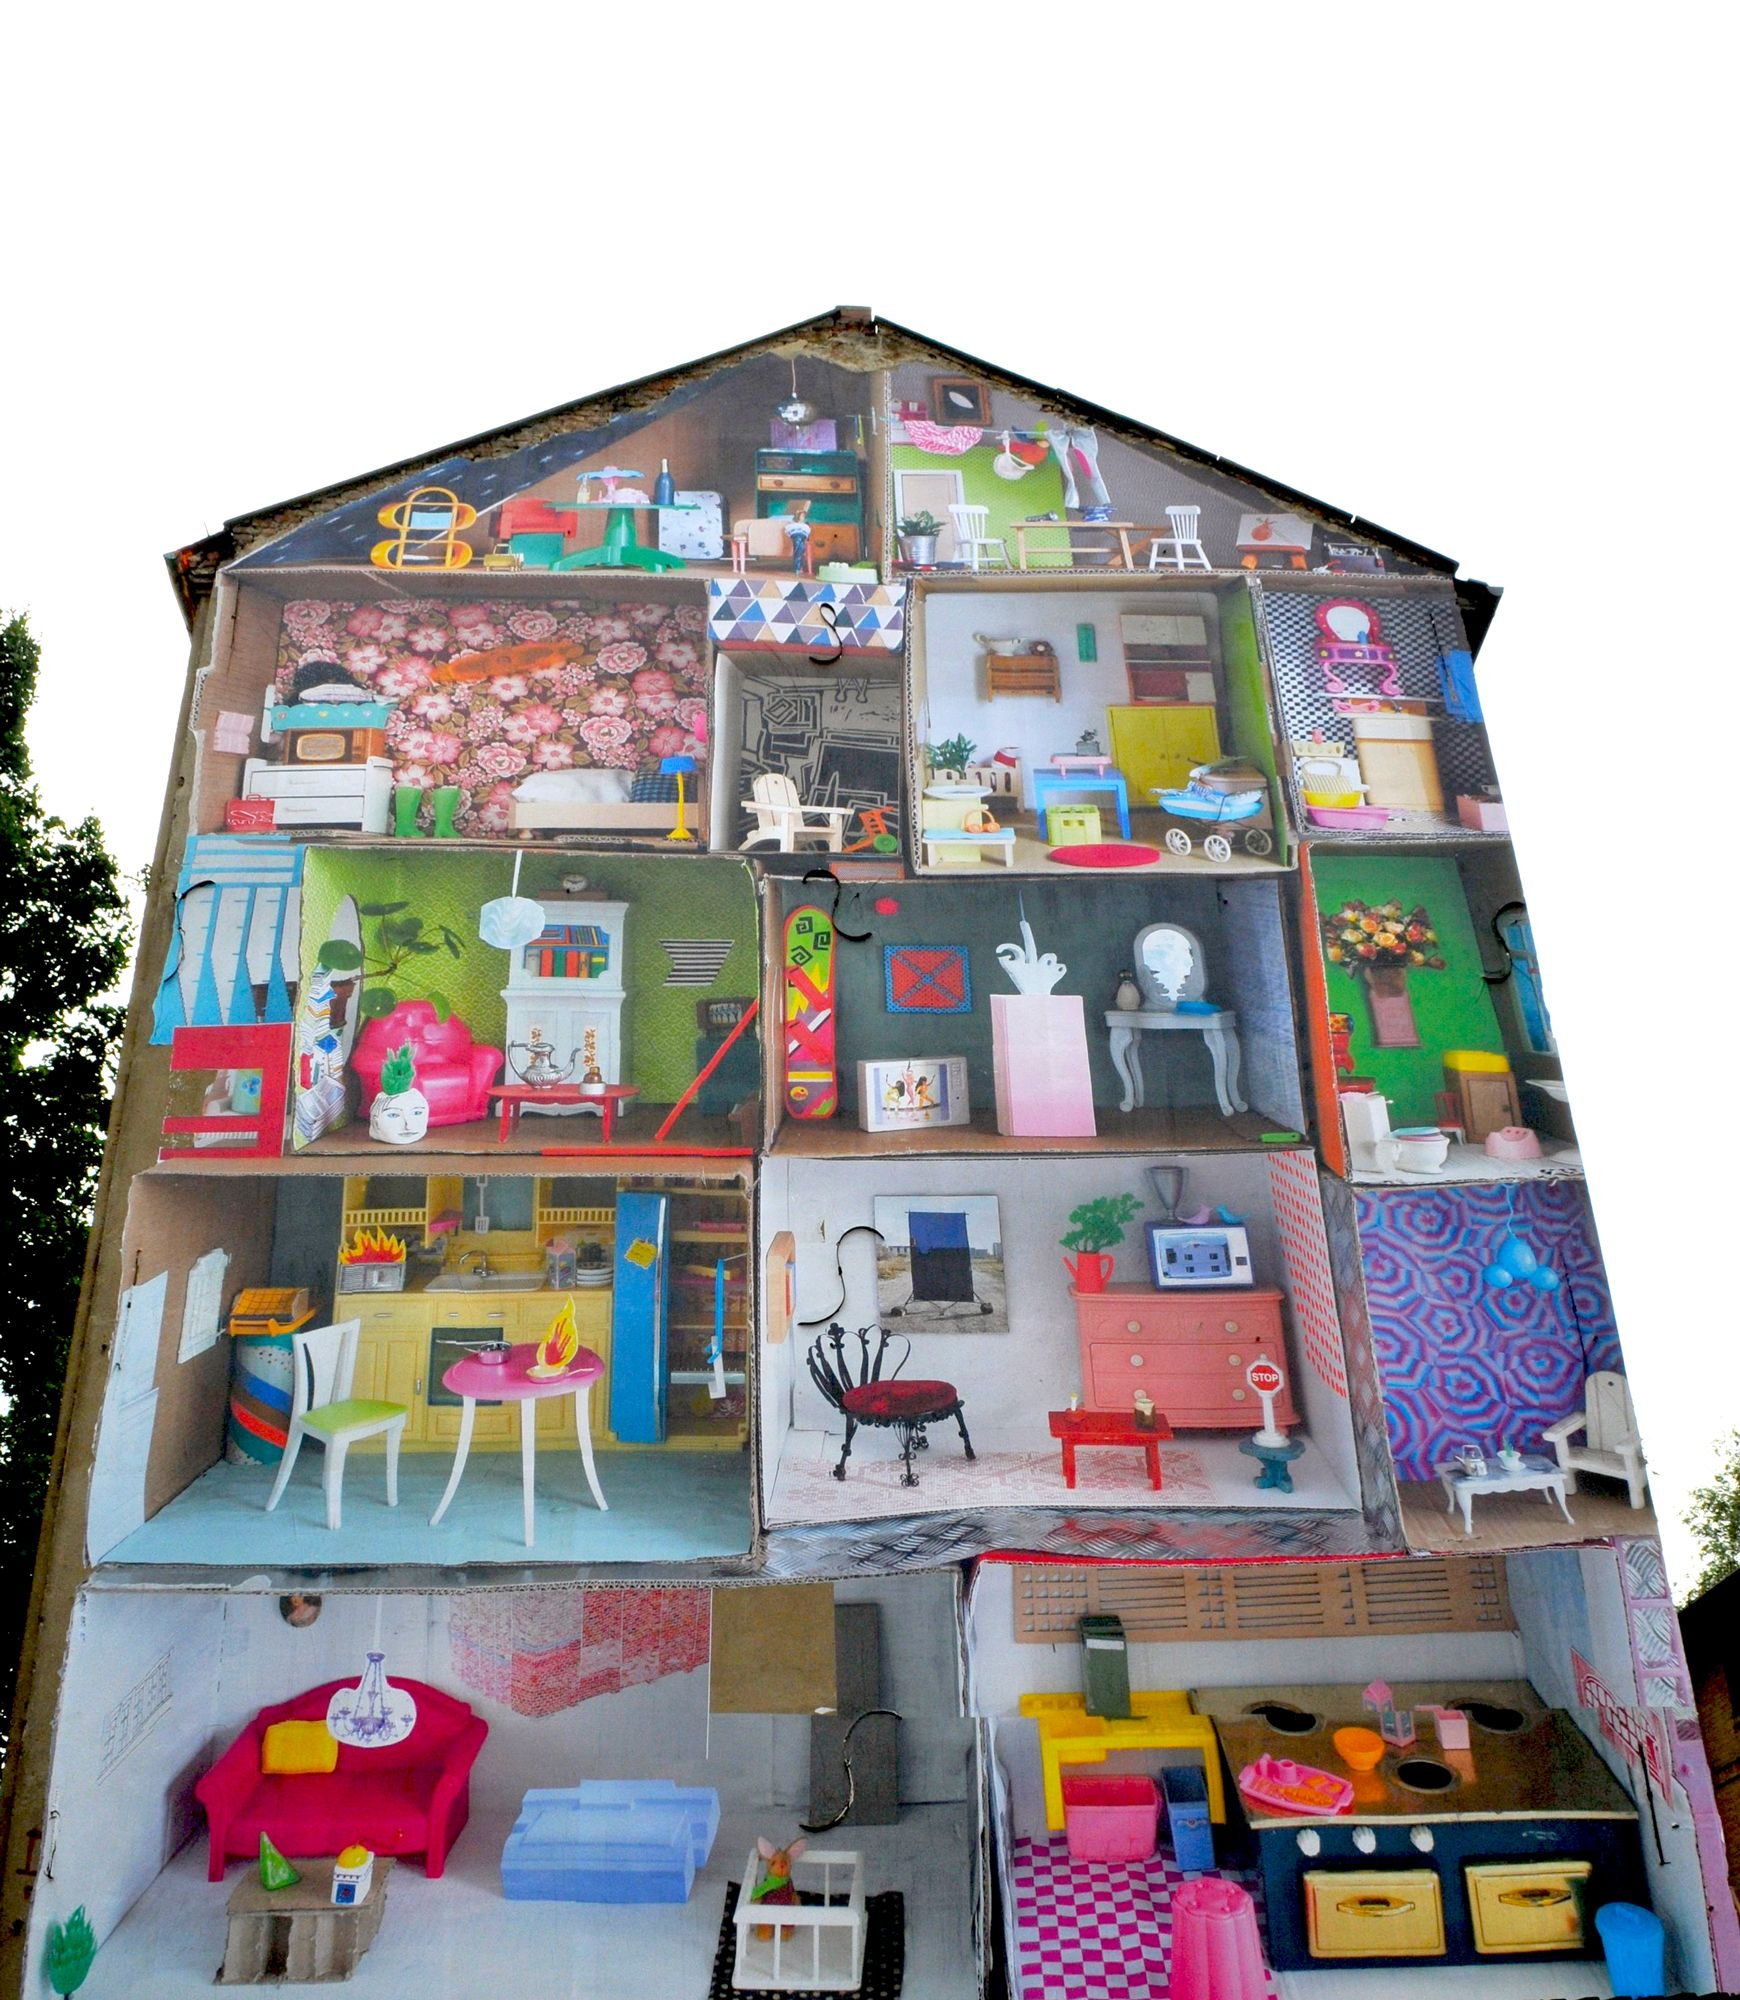 Austrian artist marlene hausegger project behind the wall giant doll house 77 bergstrasse berlin